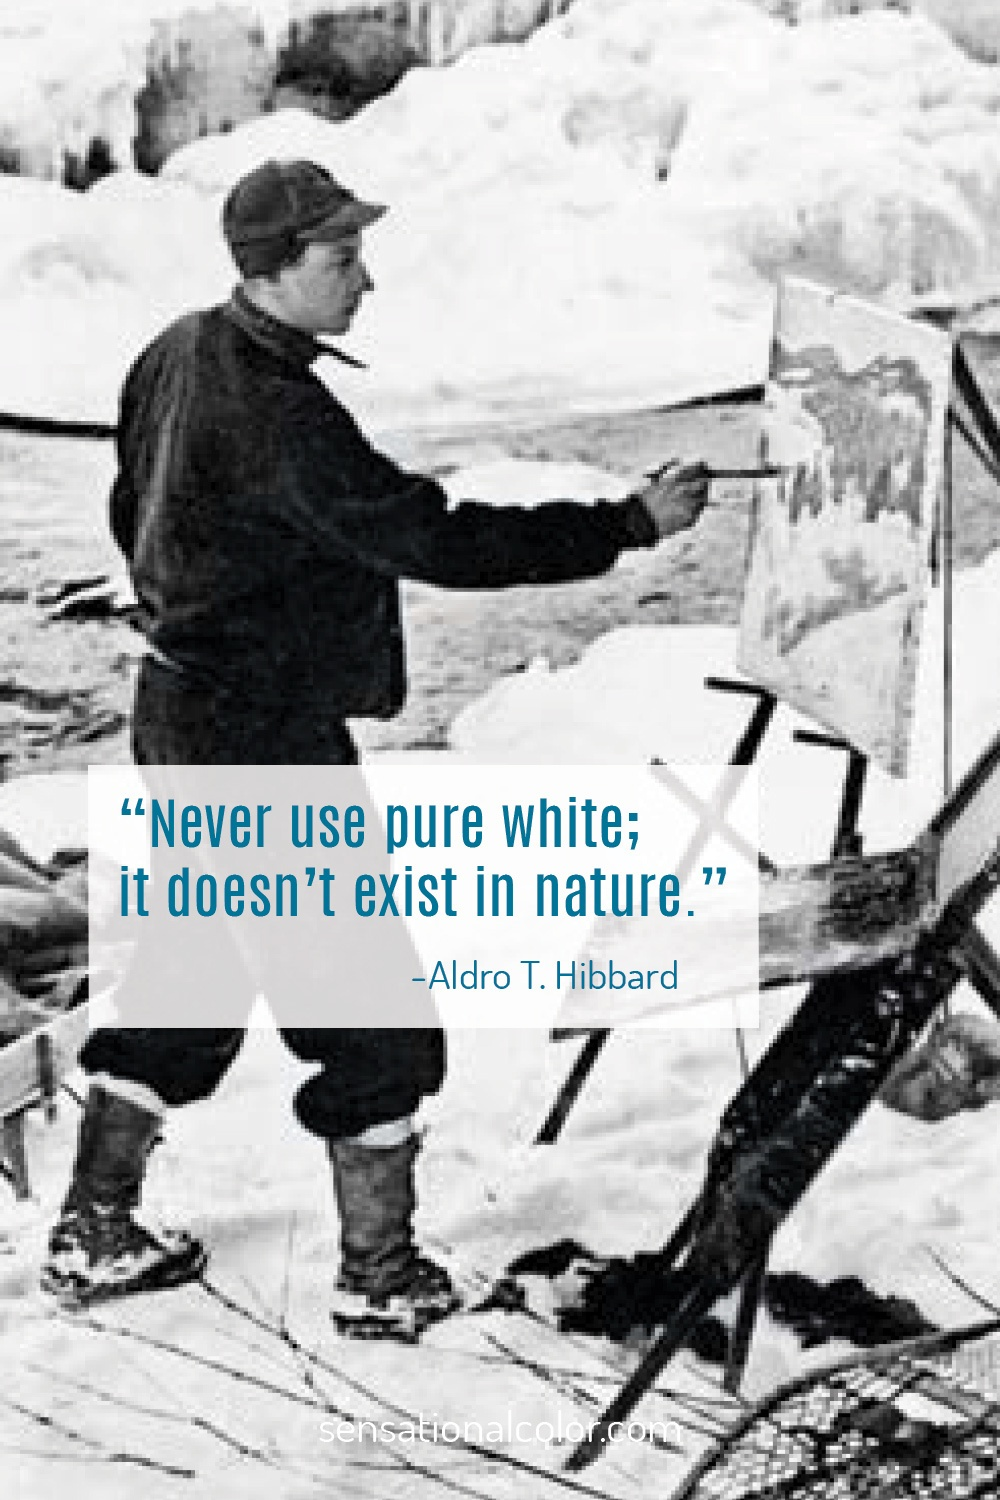 """Never use pure white; it doesn't exist in nature."" - Aldro T. Hibbard"